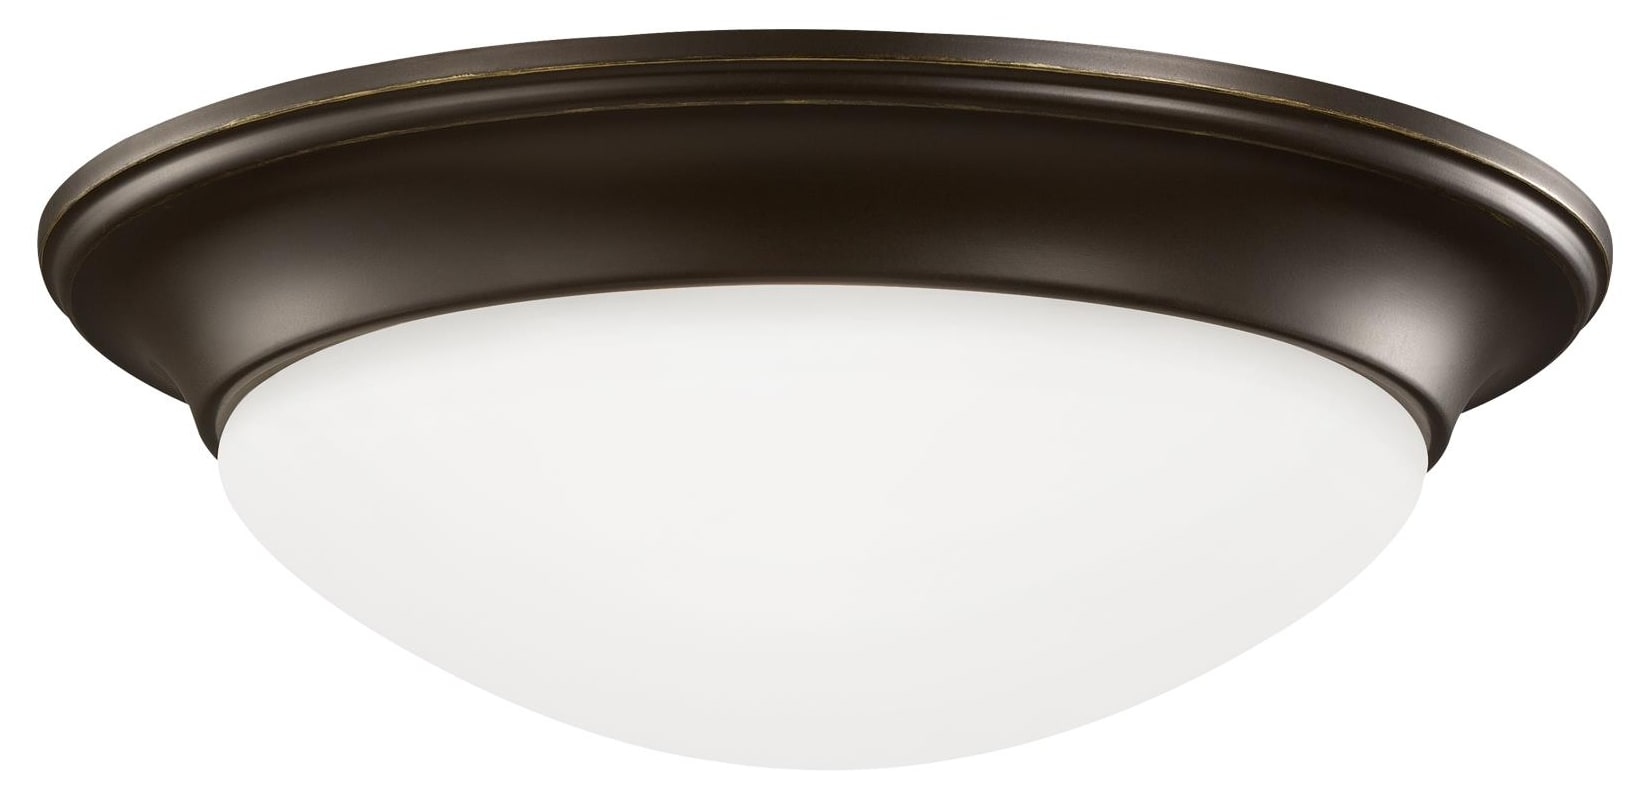 Sea Gull Lighting 75436 Nash 3 Light Flush Mount Ceiling Fixture